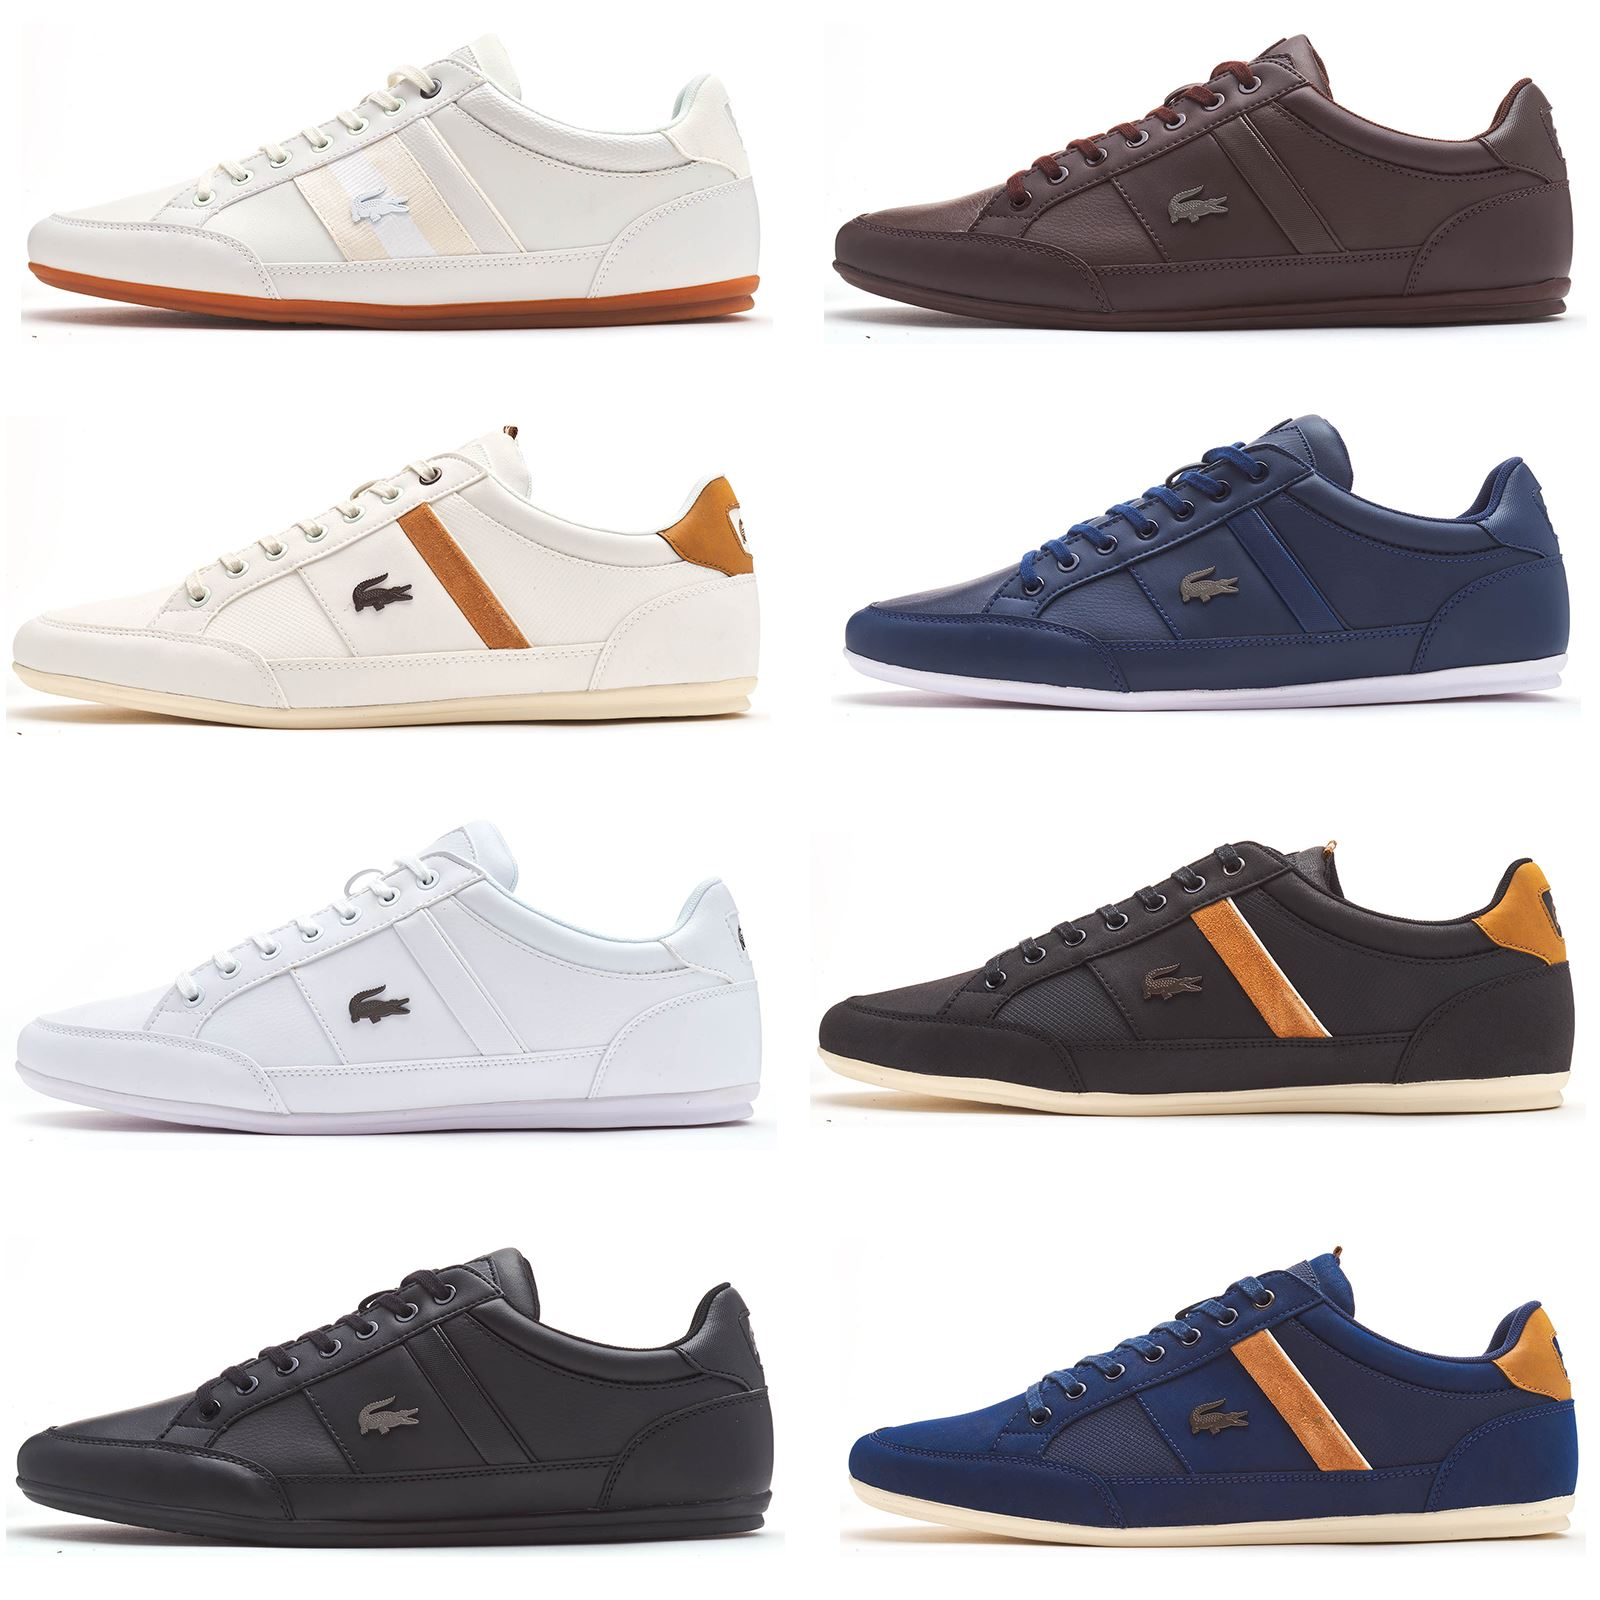 f48b32a1d487 Details about Lacoste Chaymon 119 5 CMA   BL 1 cma Trainers in White